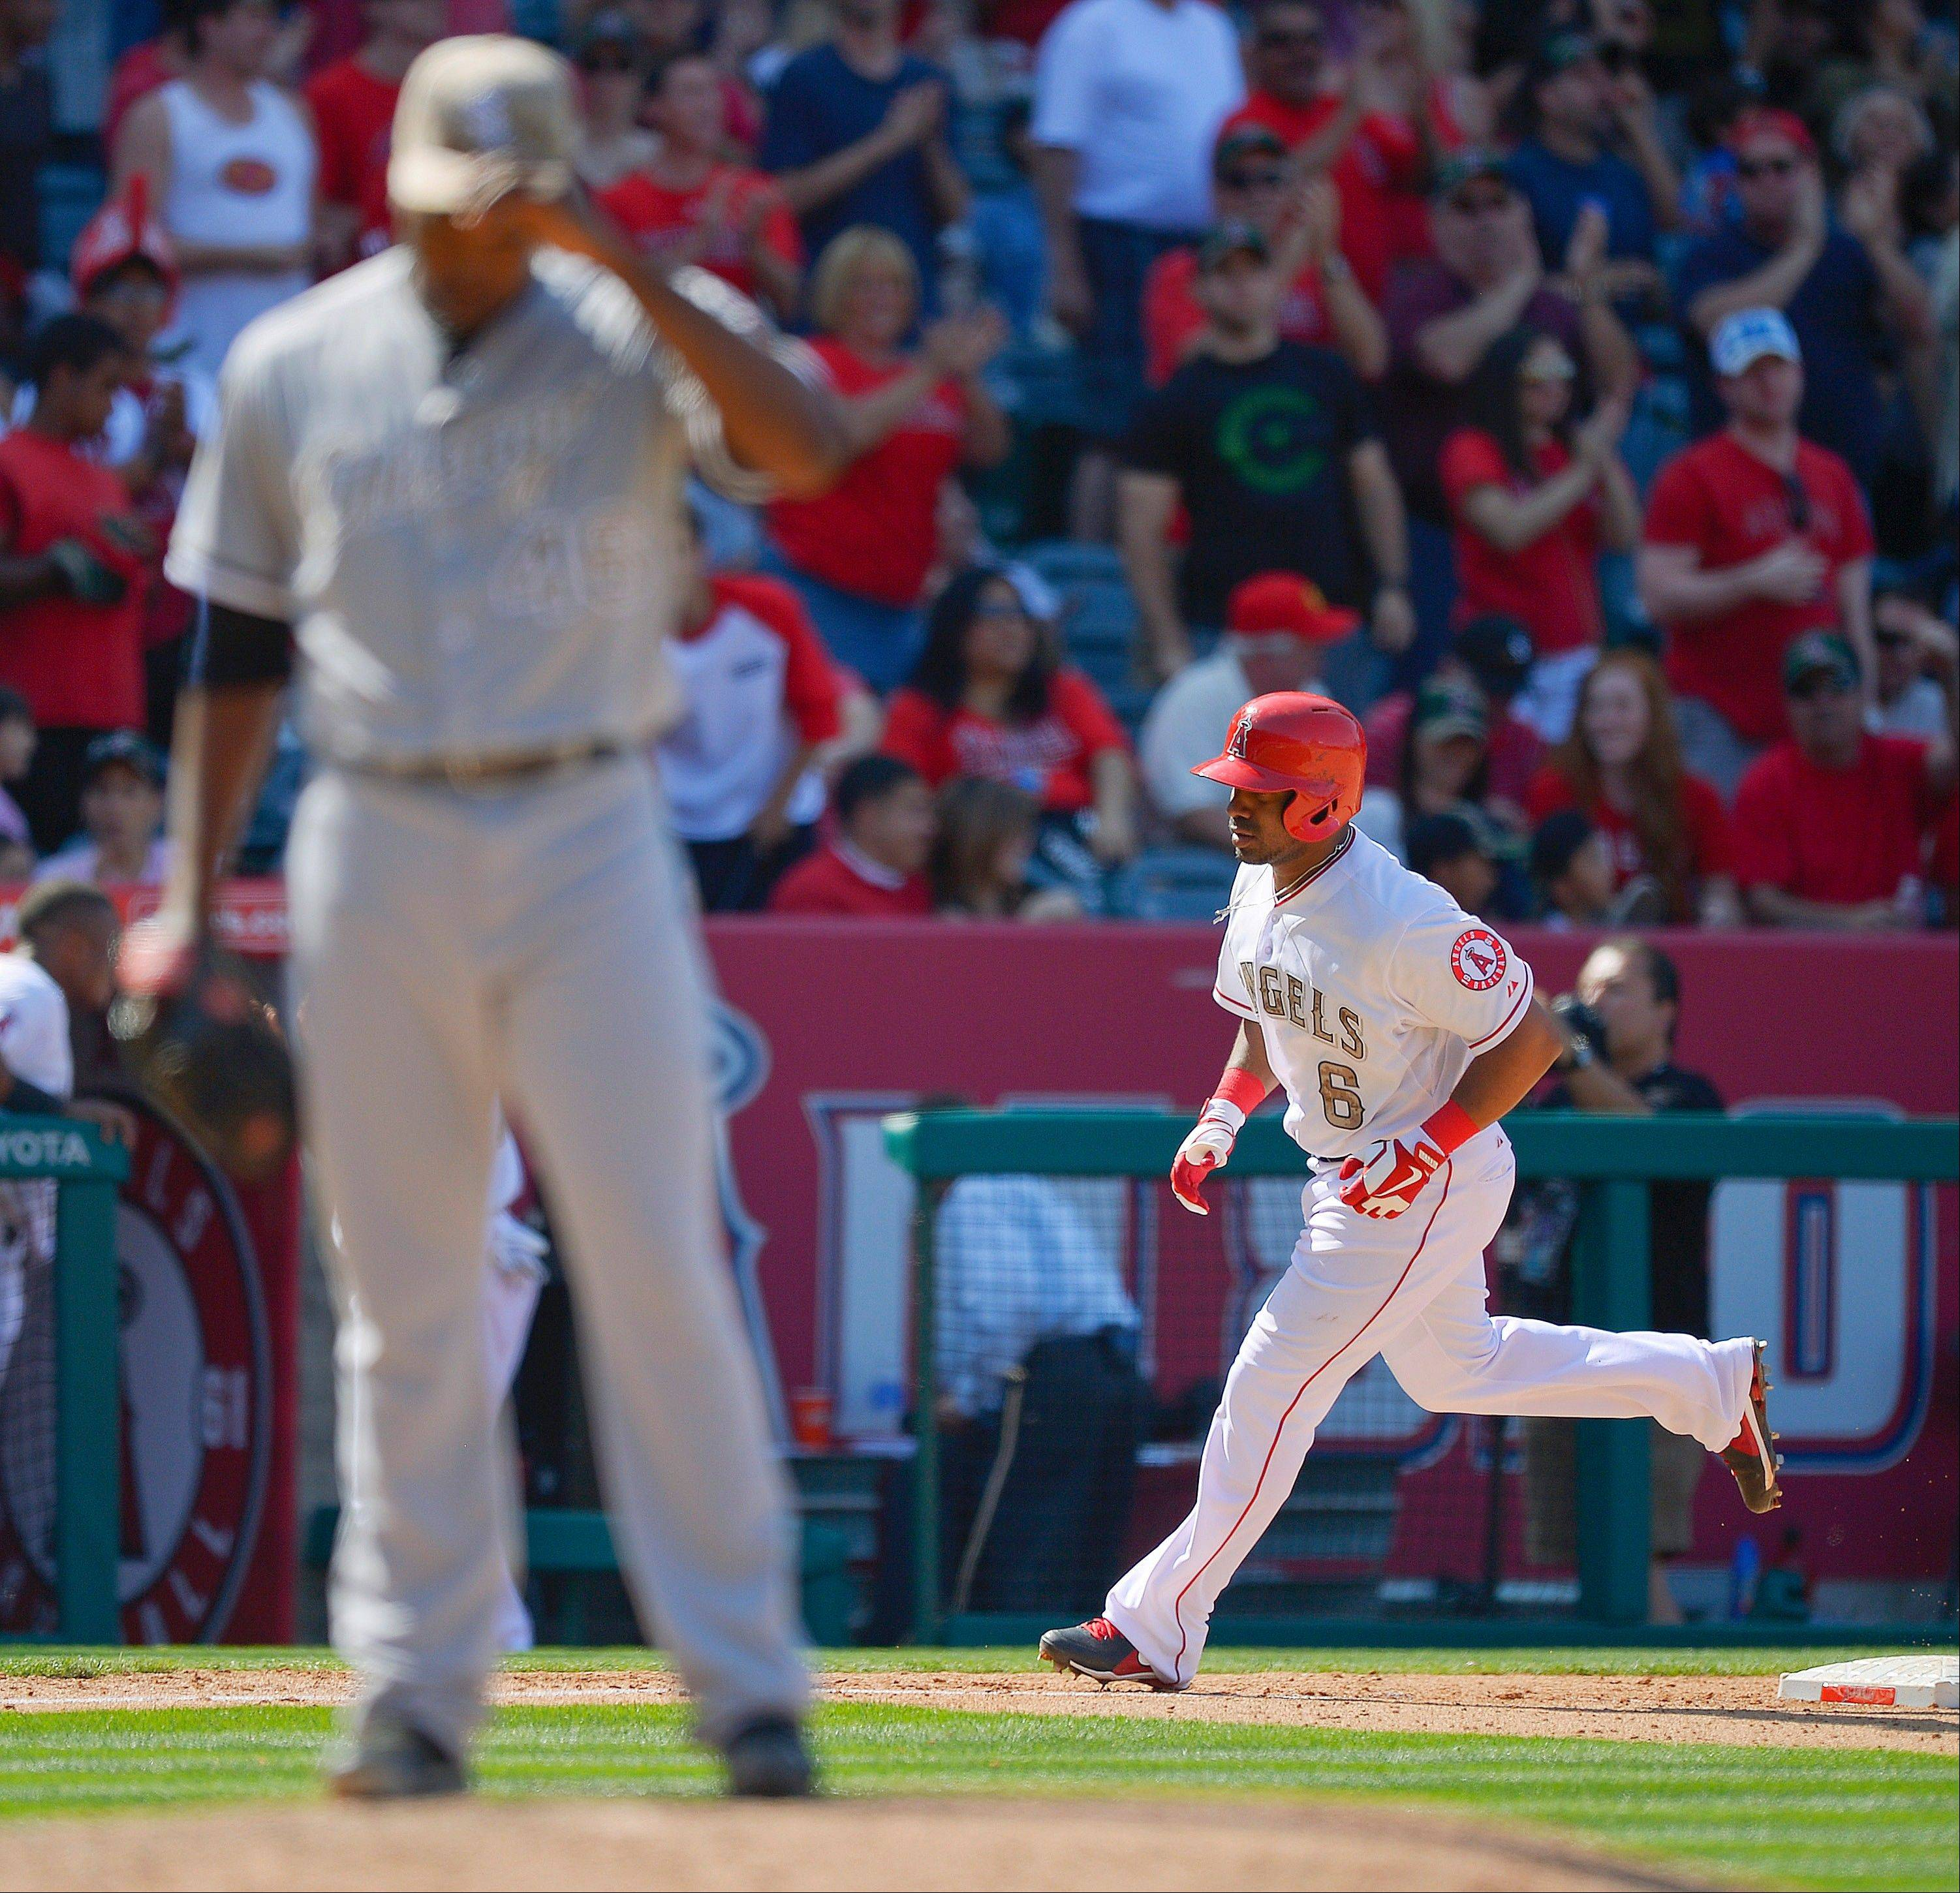 Los Angeles Angels' Alberto Callaspo (6) rounds the bases on a three-run home run off Chicago White Sox relief pitcher Donnie Veal, foreground, during the seventh inning of a baseball game, Saturday, May 18, 2013, in Anaheim, Calif.